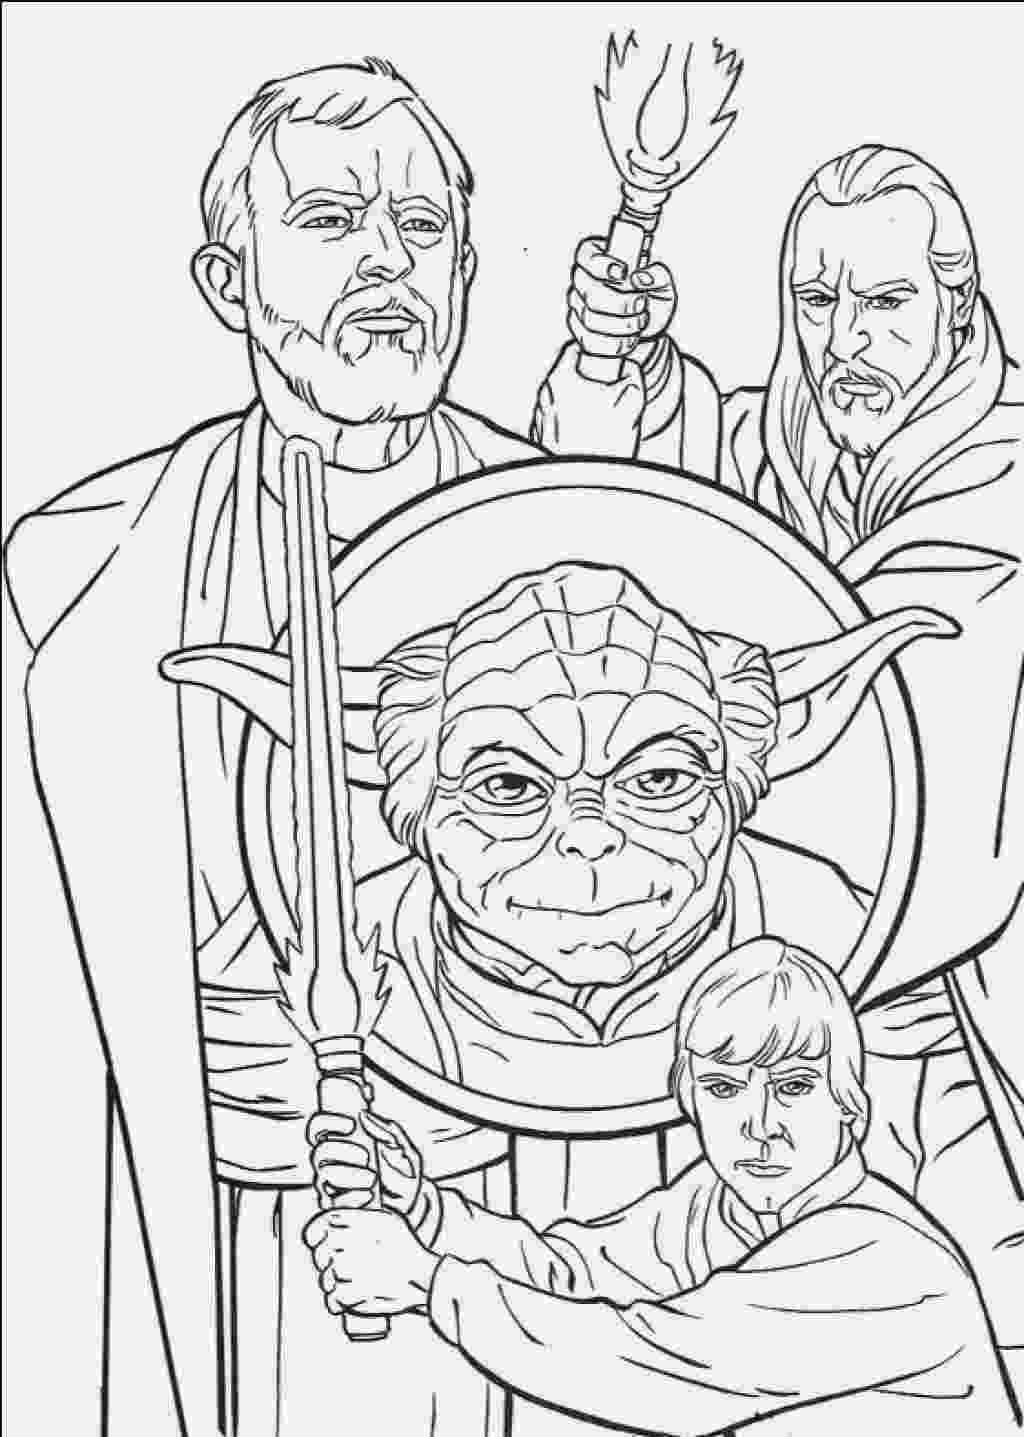 star wars free coloring pages star wars clone wars coloring pages coloring pages star free wars